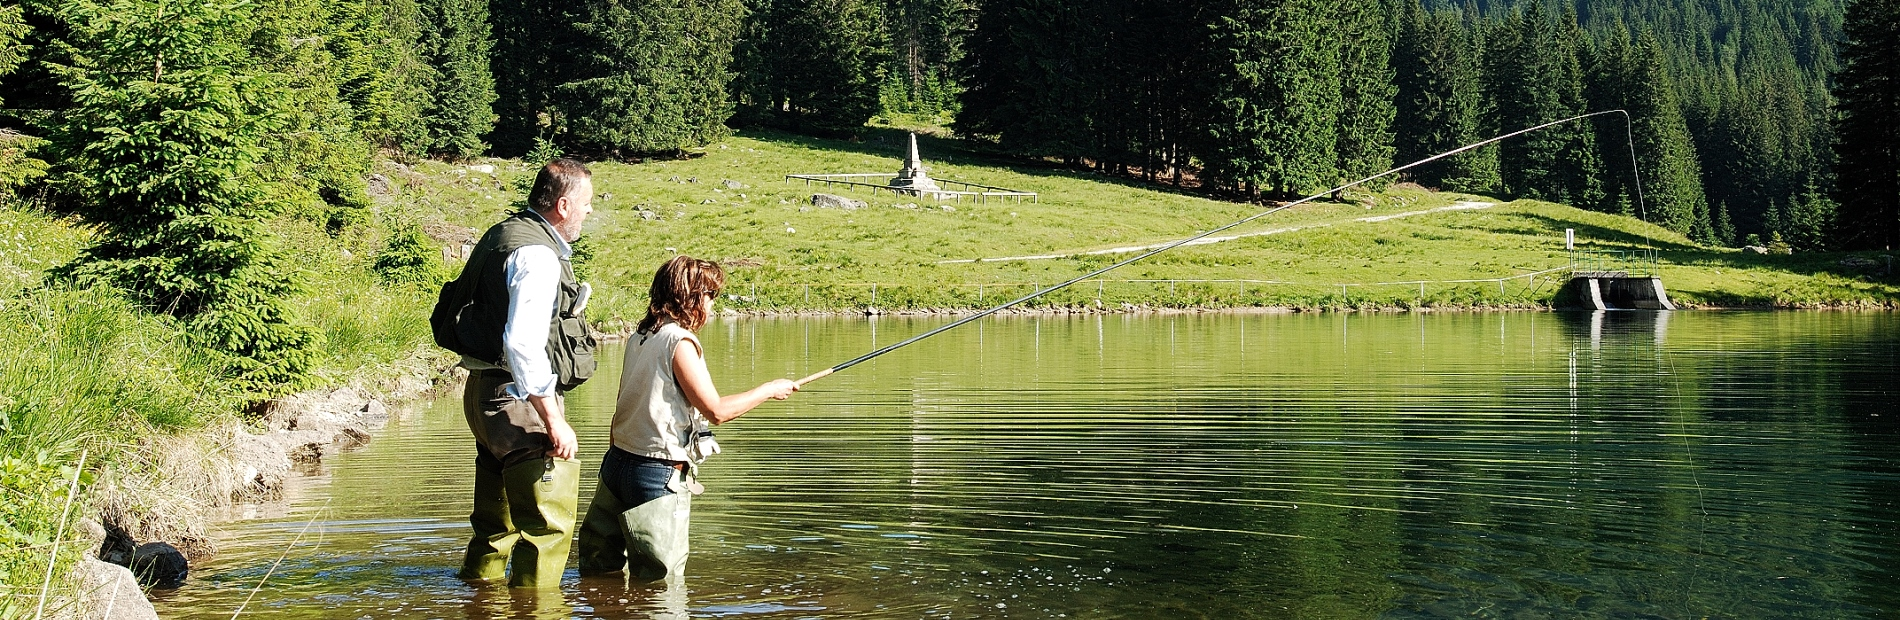 Fishing on alpine lakes and mountain streams